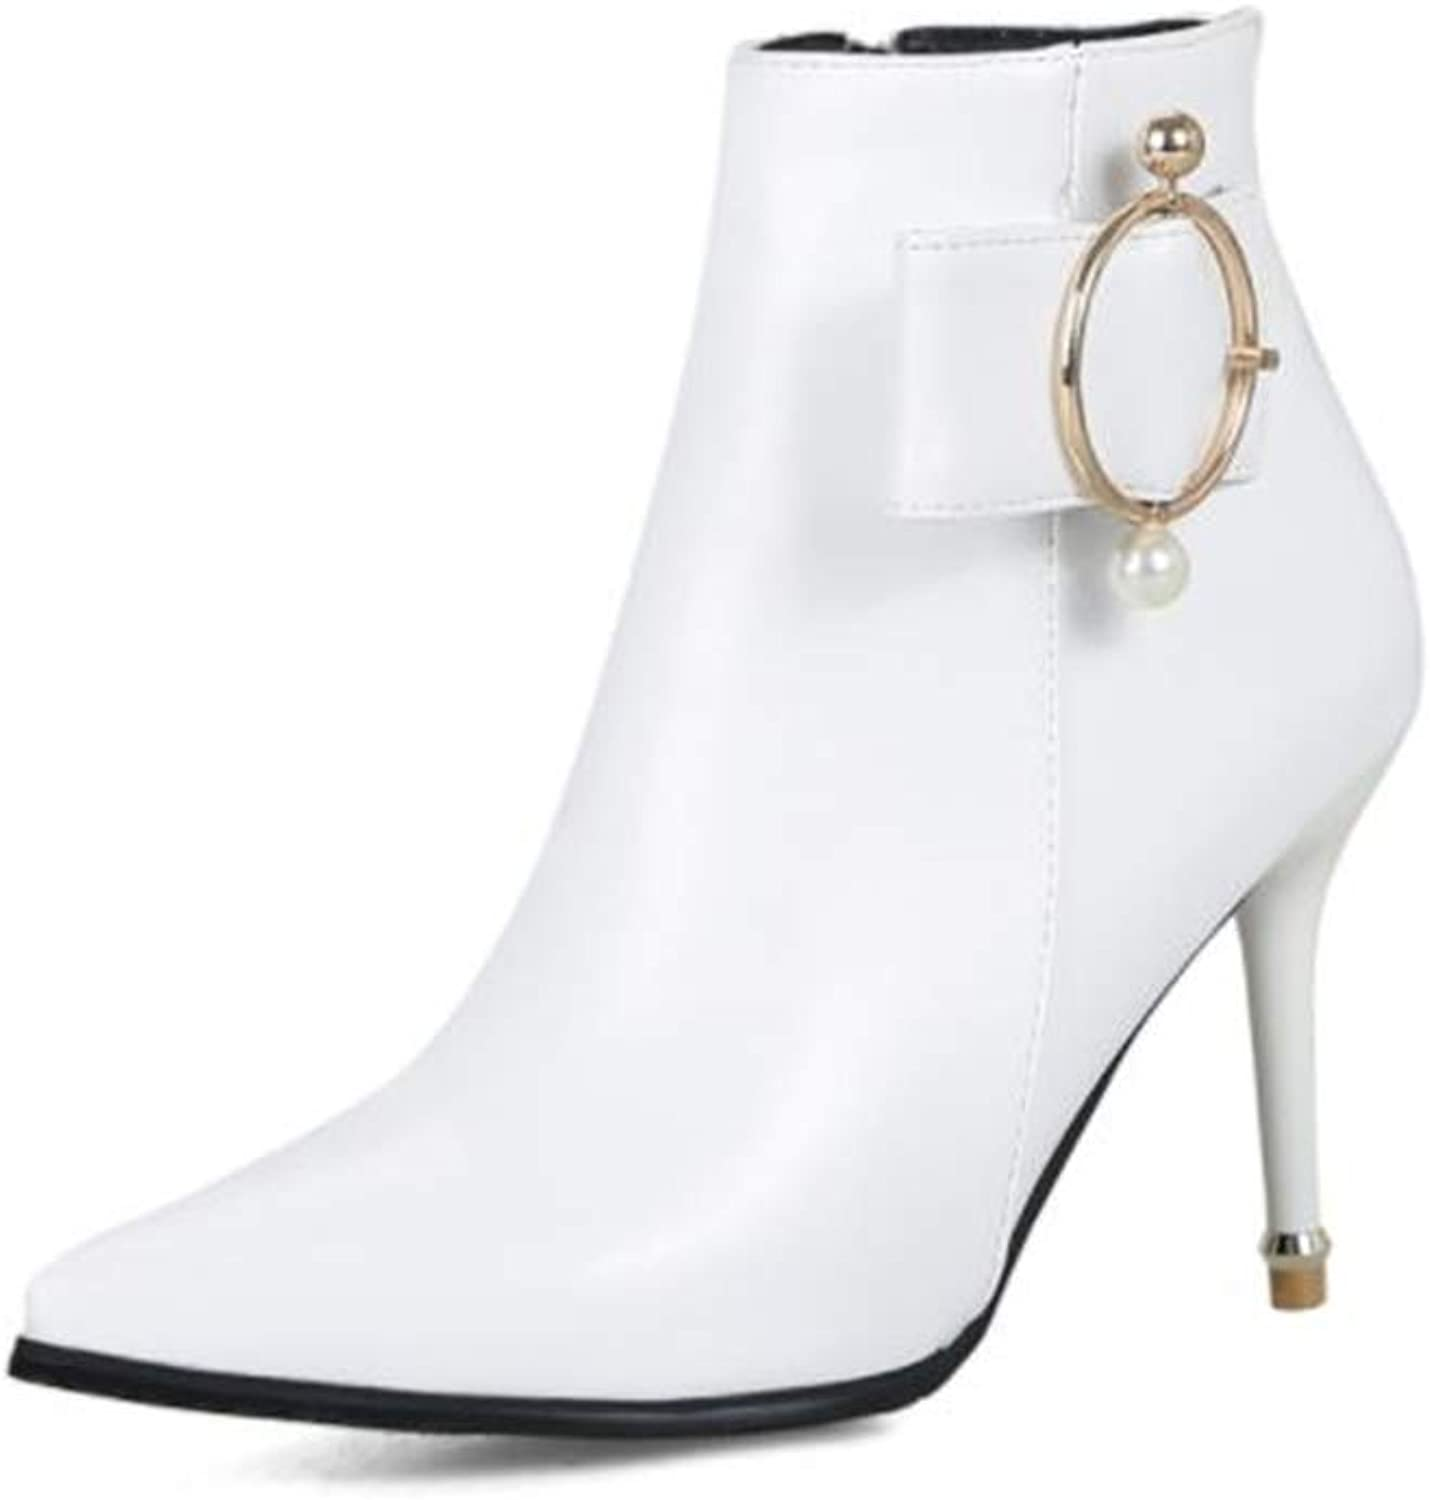 Women's Pointy Toe Side Zipper Stiletto High Heels PU Autumn Winter Ankle Boots with Pearls